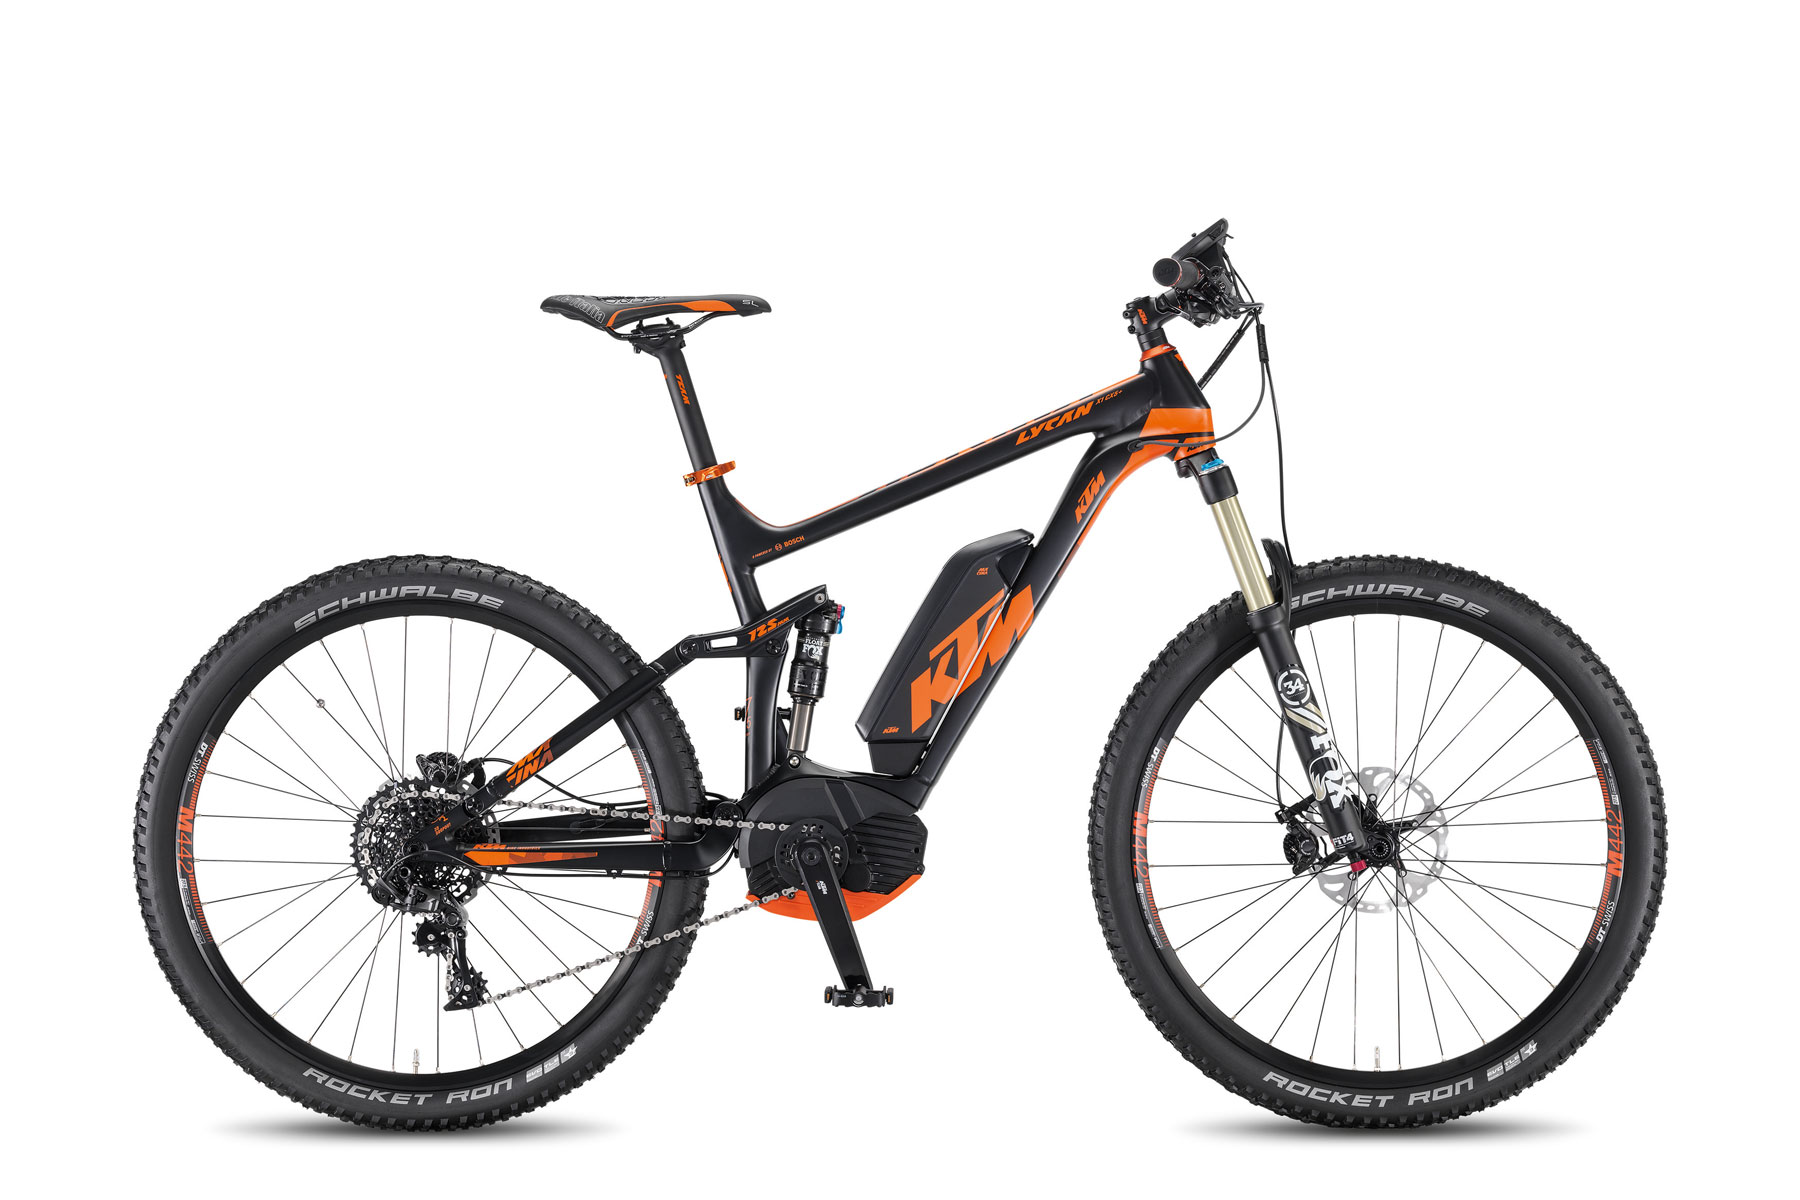 ktm macina lycan 27 5 x1 11 cx5 2016 ebike review mbr. Black Bedroom Furniture Sets. Home Design Ideas